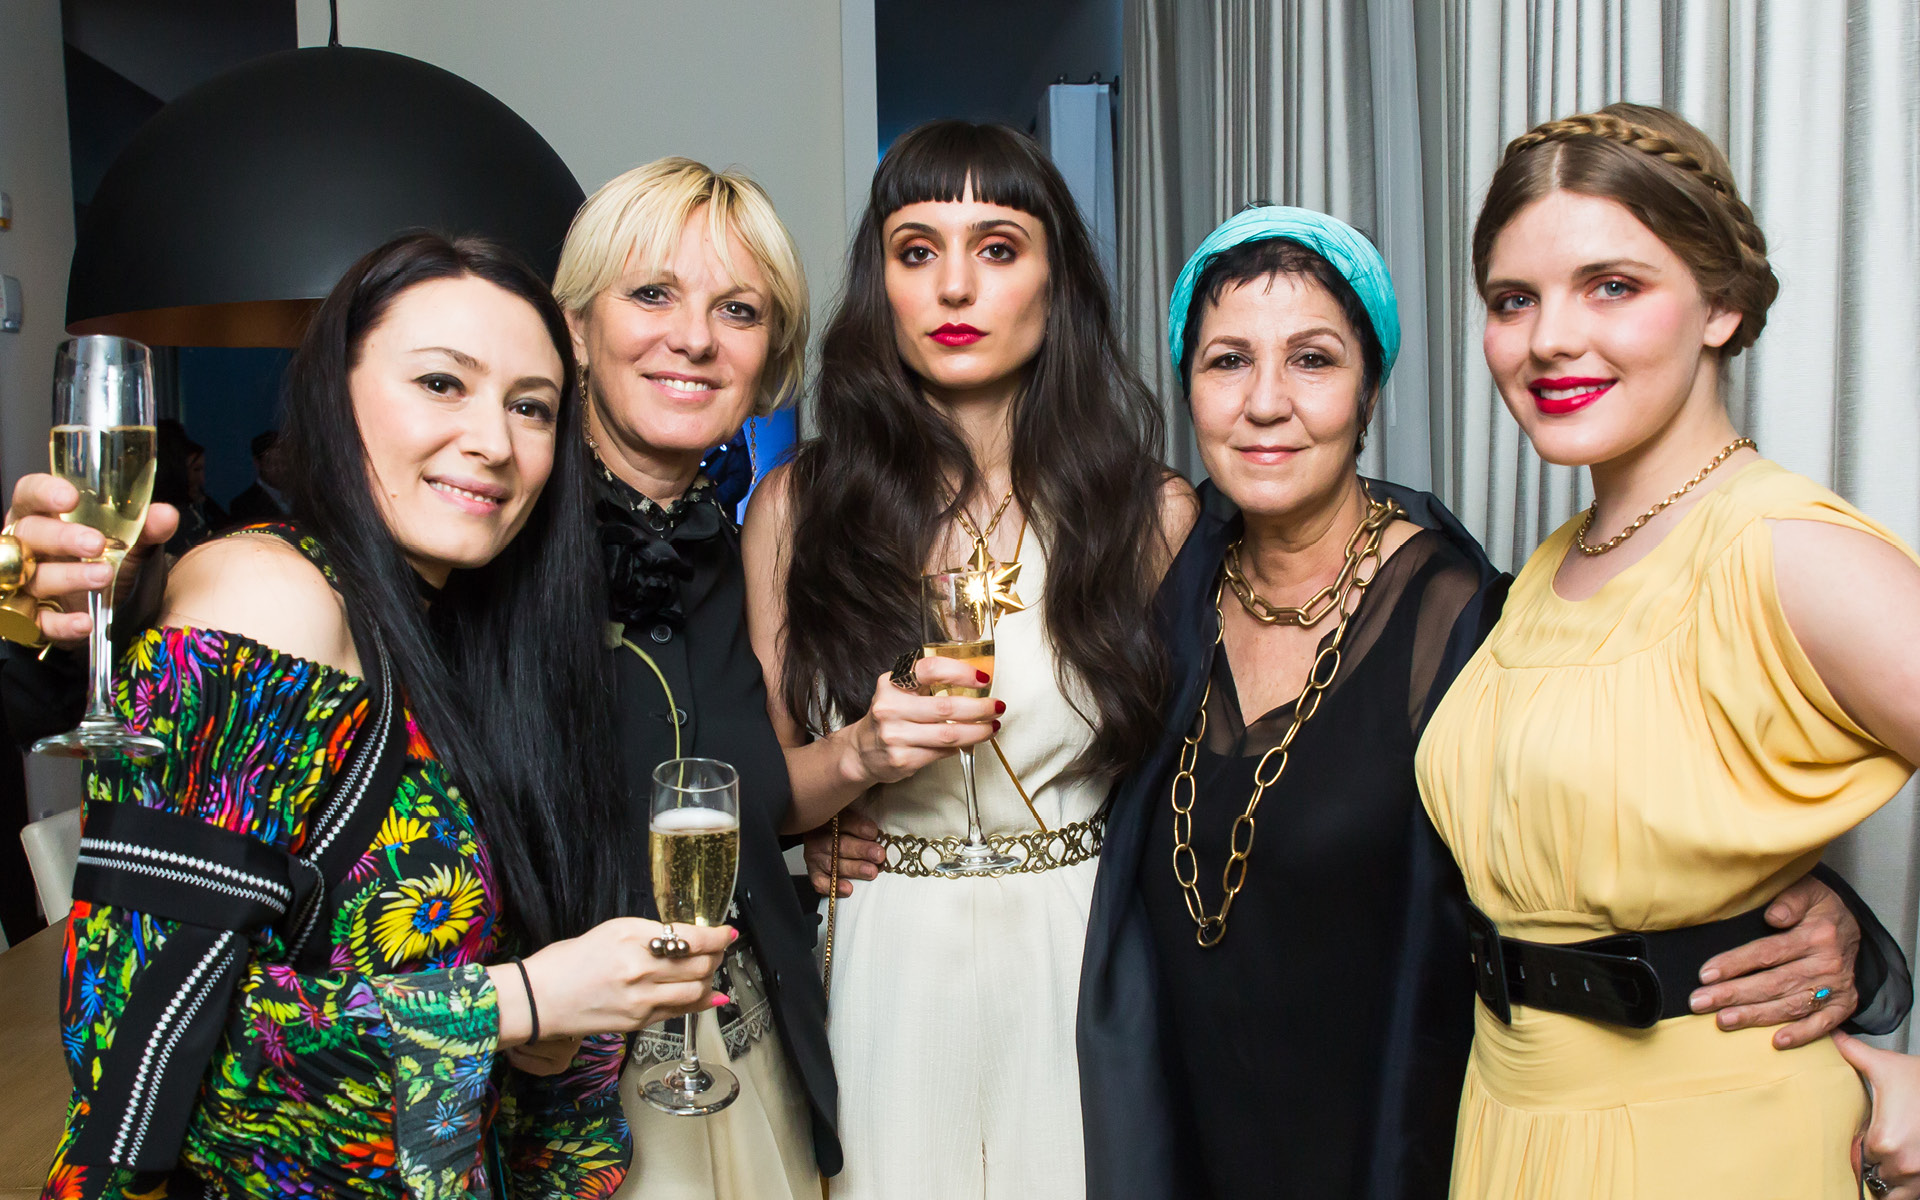 Left to Right: Yelena Deyneko, Daniela Kamiliotis, Gwendalin Grewal, Cynthia Altoriso and Syrie Moskowitz, at Edition Hotel, celebrating Maxwell birthday and Spirit & Flesh magazine cover story by Mark Seliger